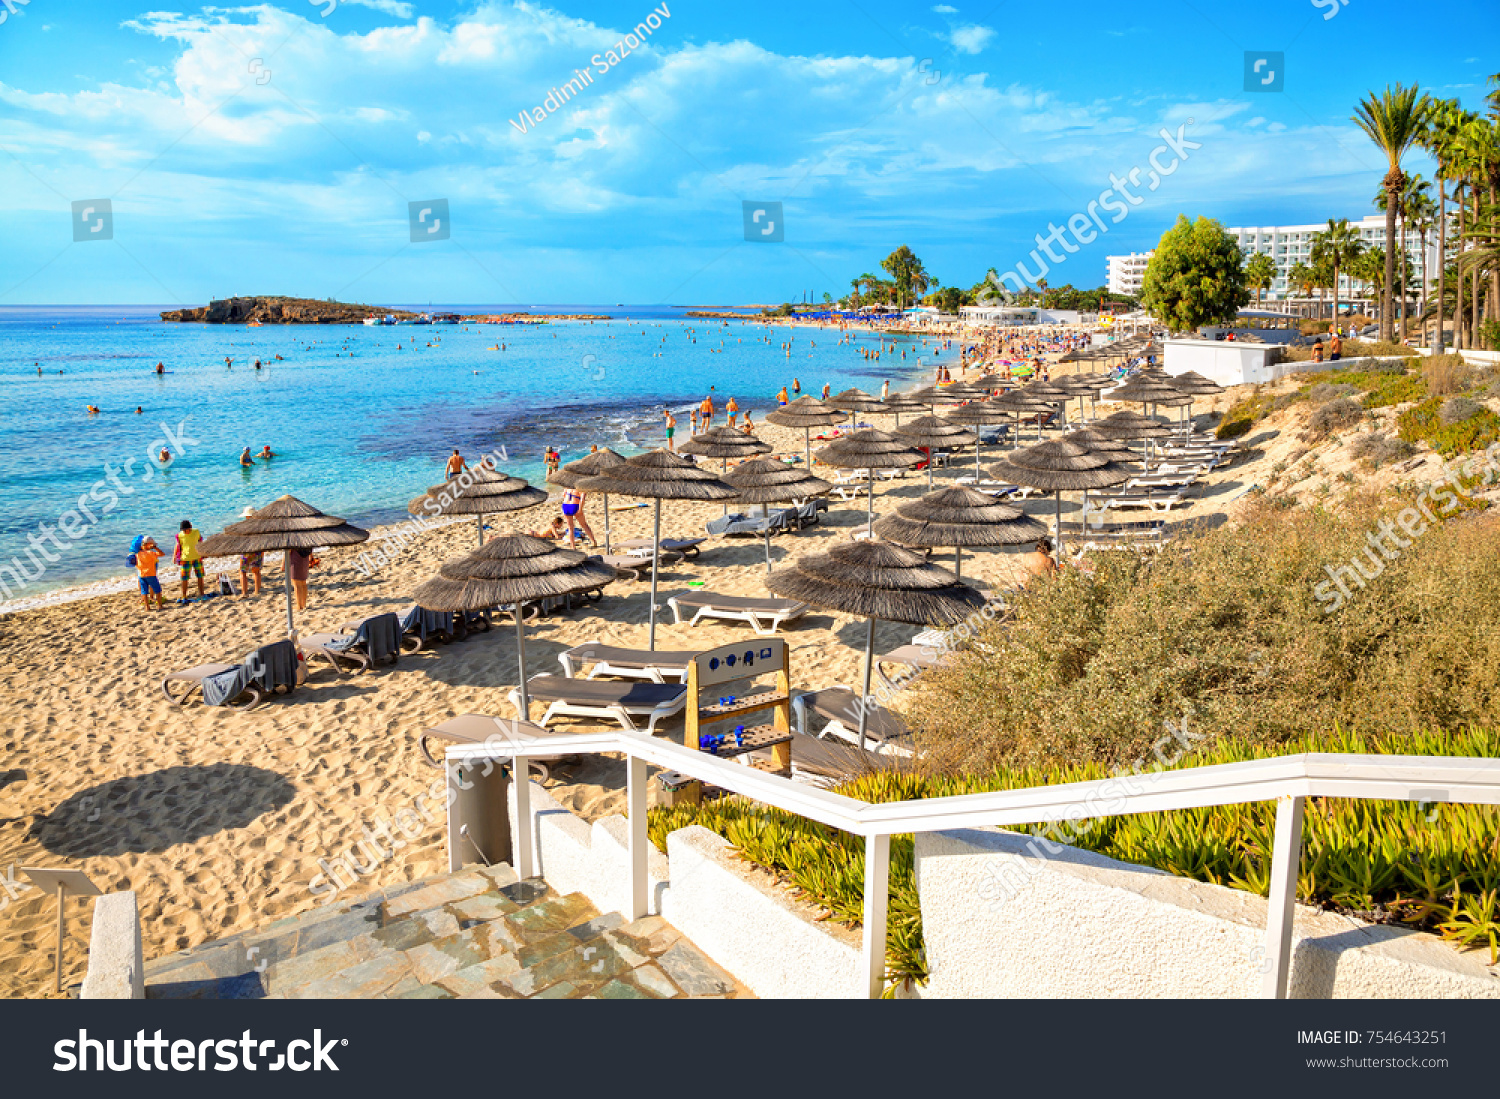 View Turquoise Water Nissi Beach Aiya Stock Photo (Royalty Free ...